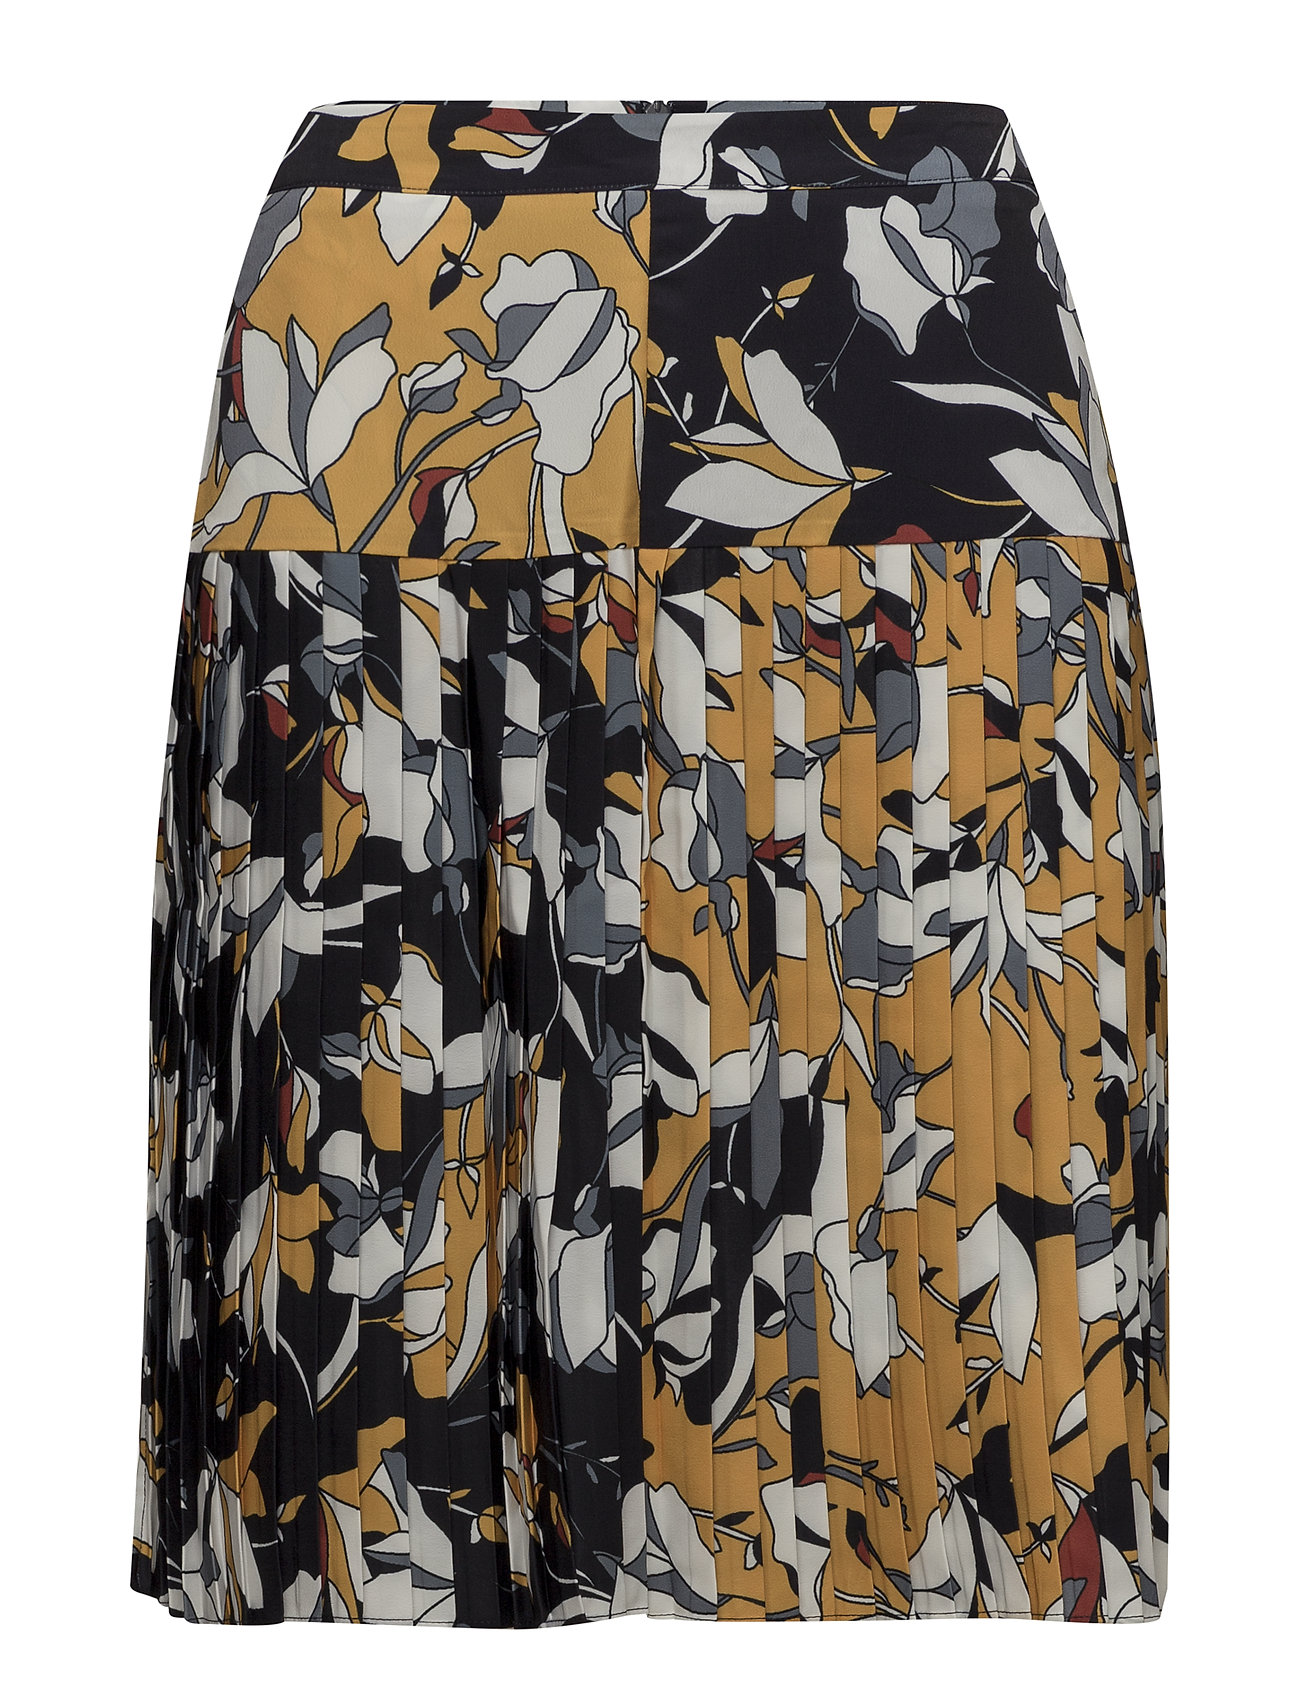 French Connection AVENTINE DRAPE PLEATED SKIRT - CALLUNA YELLOW MULTI